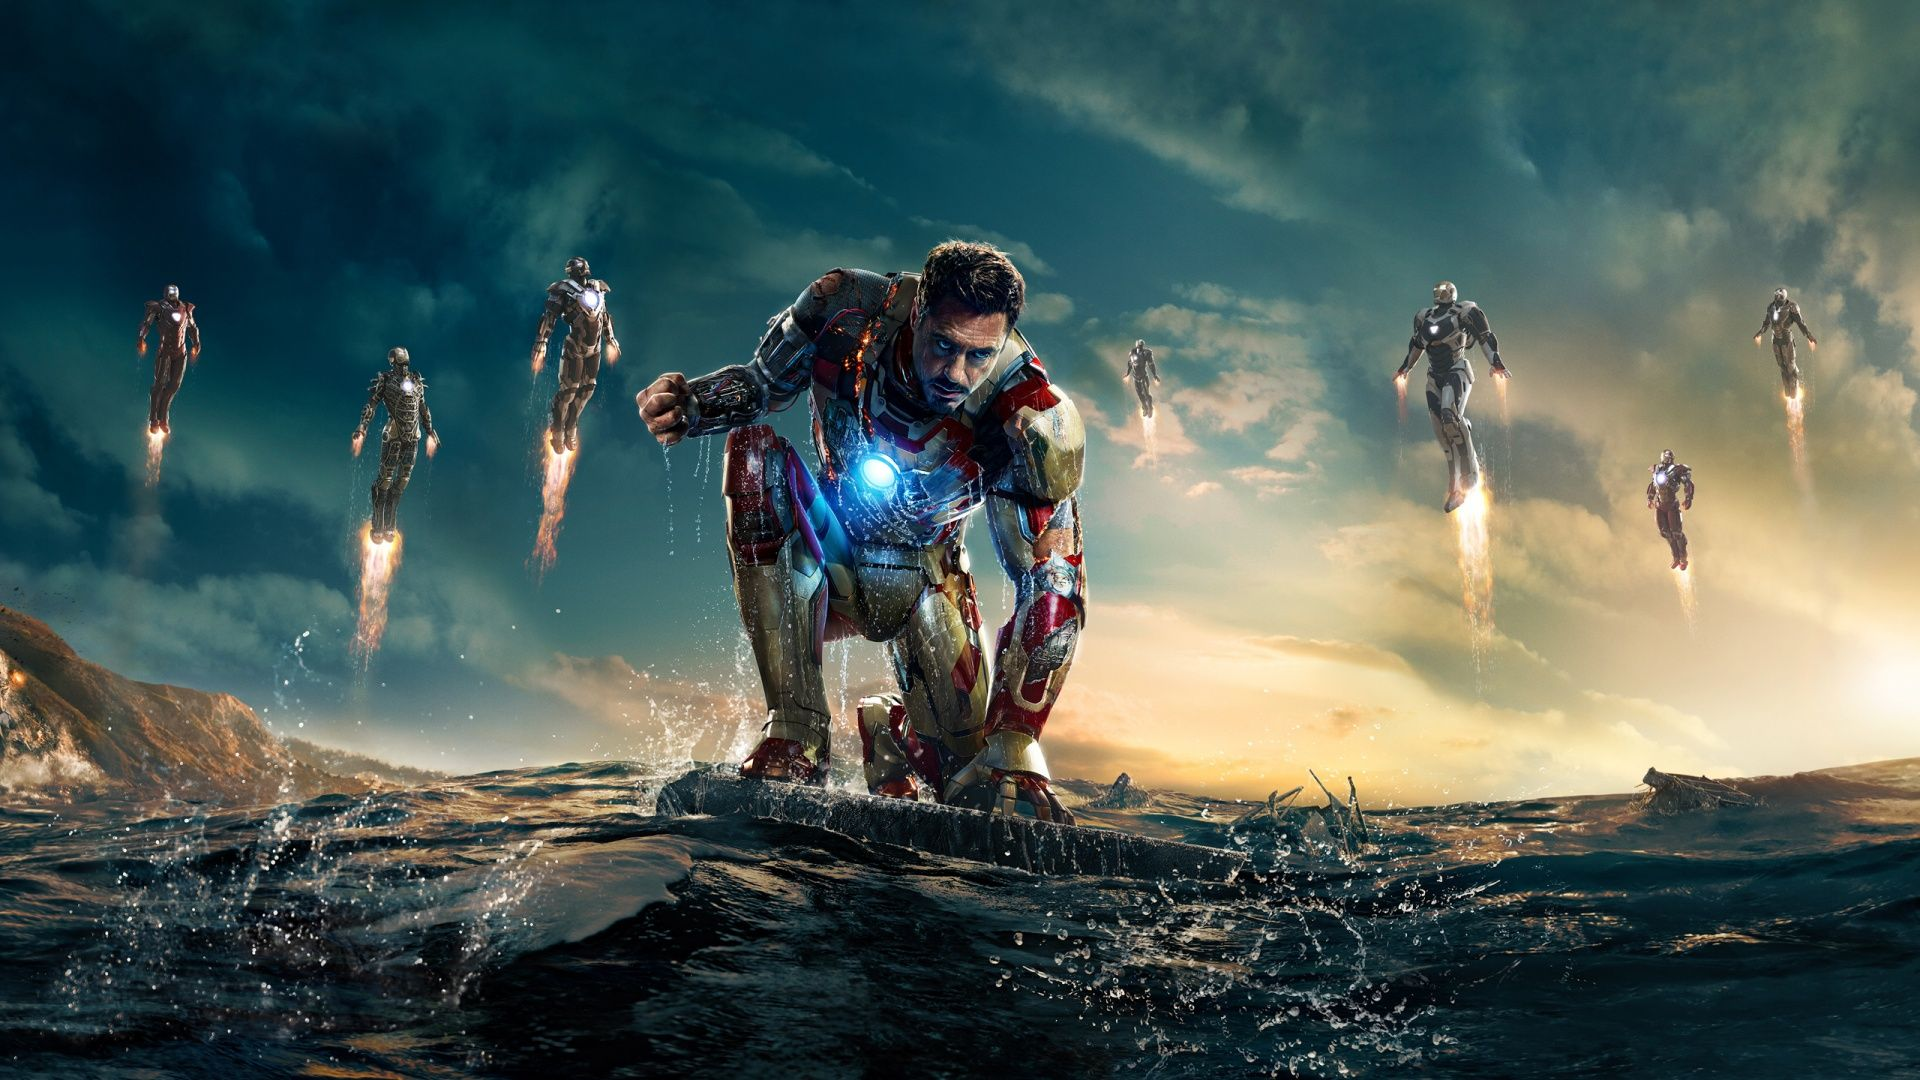 Top 10 HD Iron Man Wallpapers For IPhone 5 5s